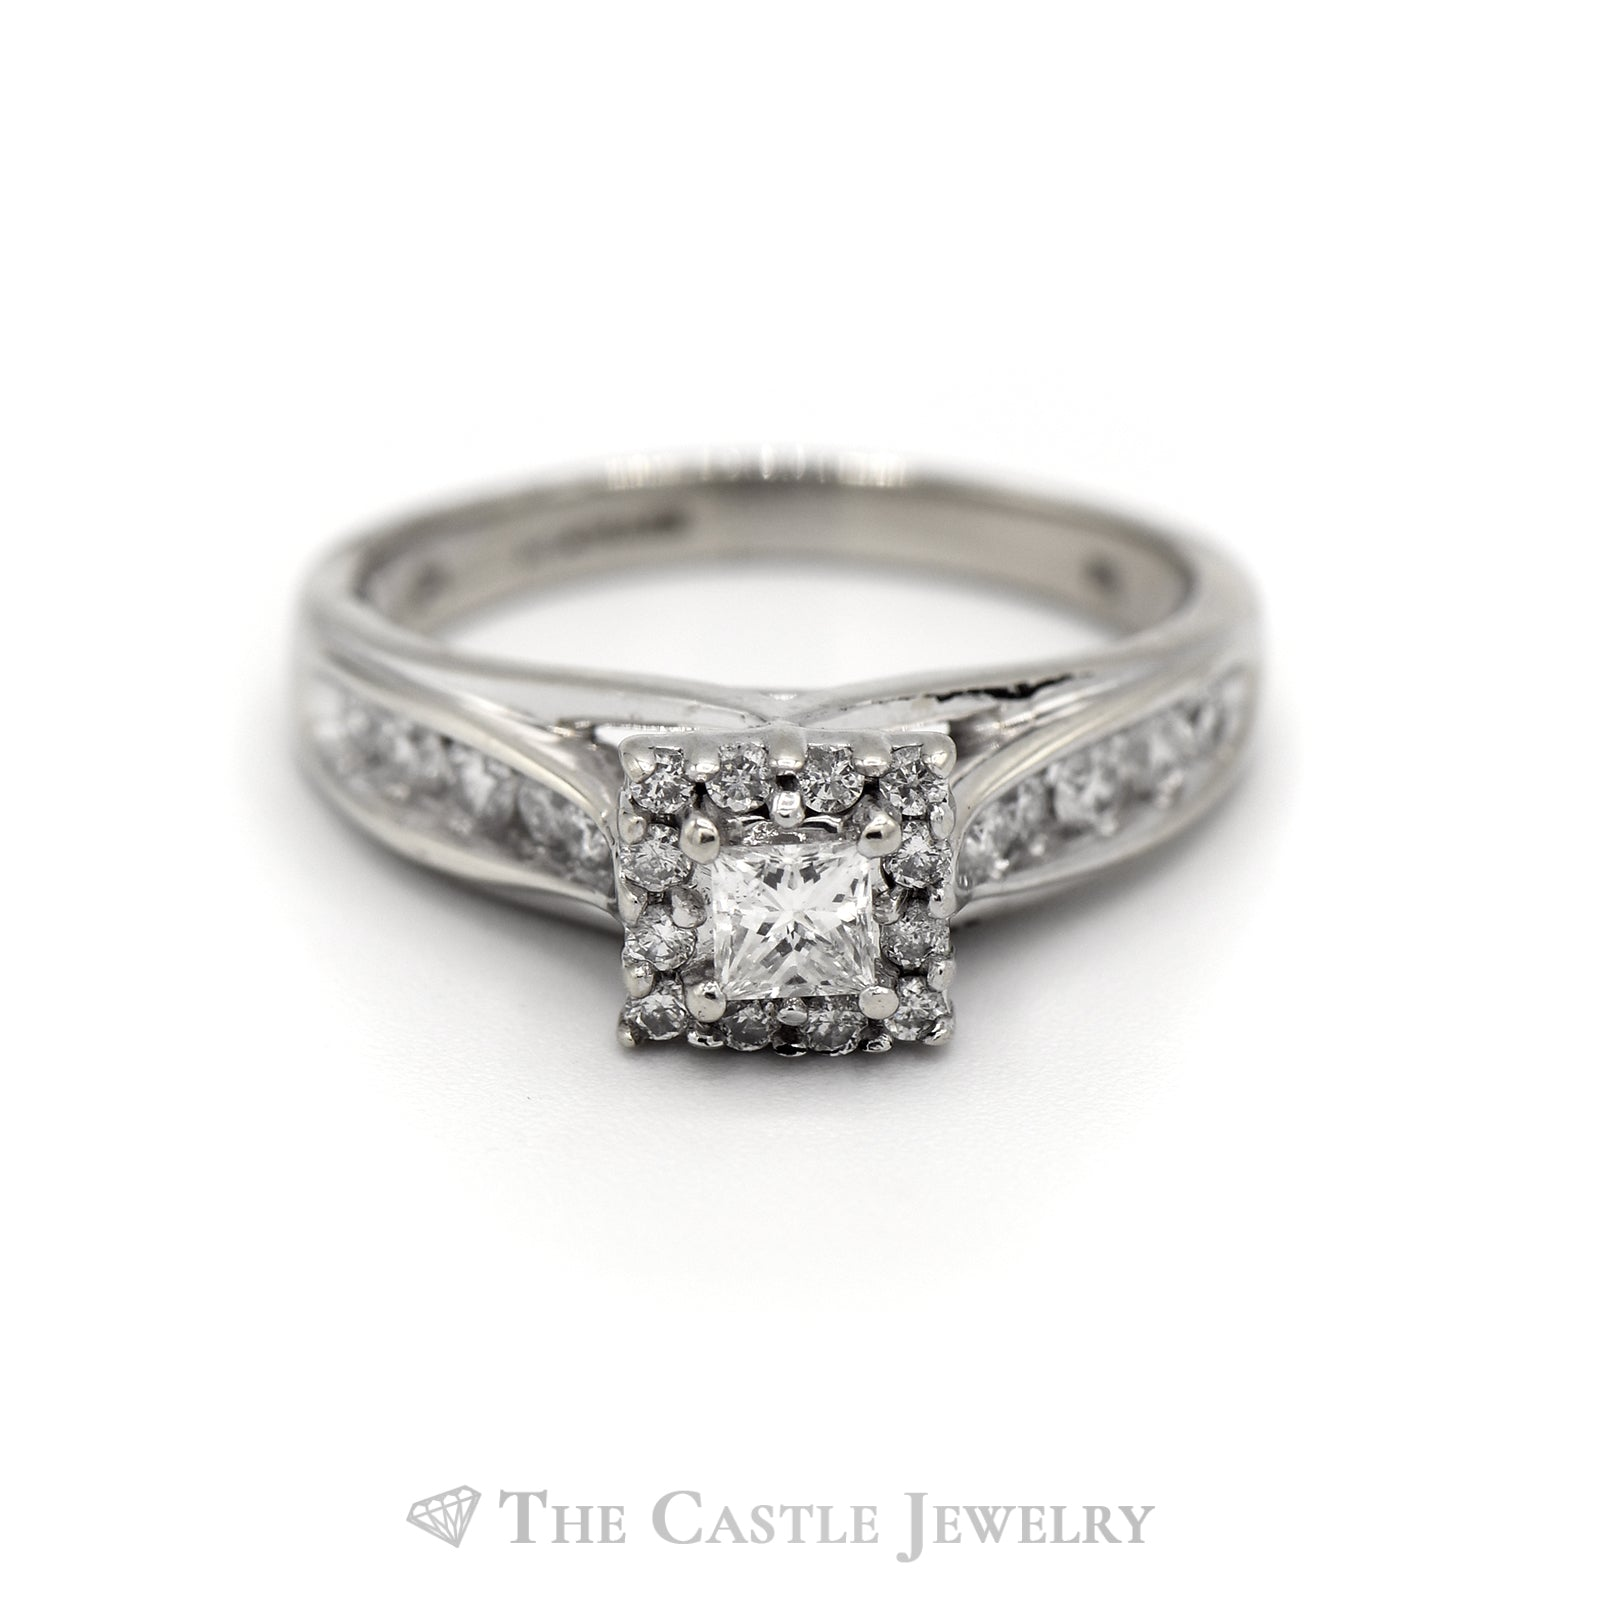 Princess Cut Diamond Engagement Ring with Diamond Halo & Accents in 14k White Gold